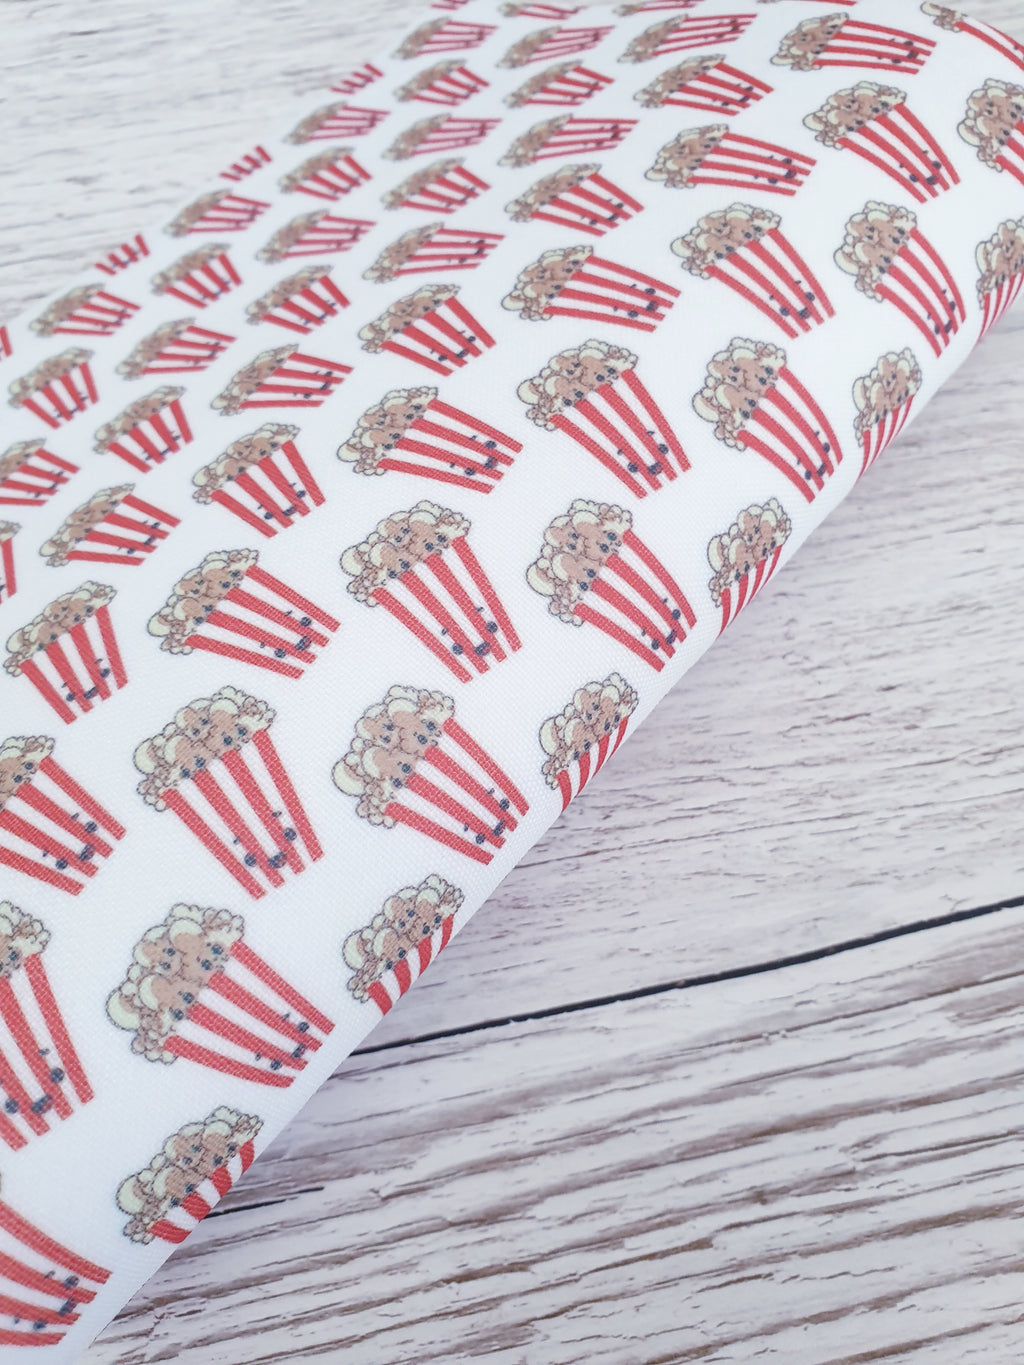 Popcorn Kawaii - Felt Backed Fabric - Honey Bee Craft Store